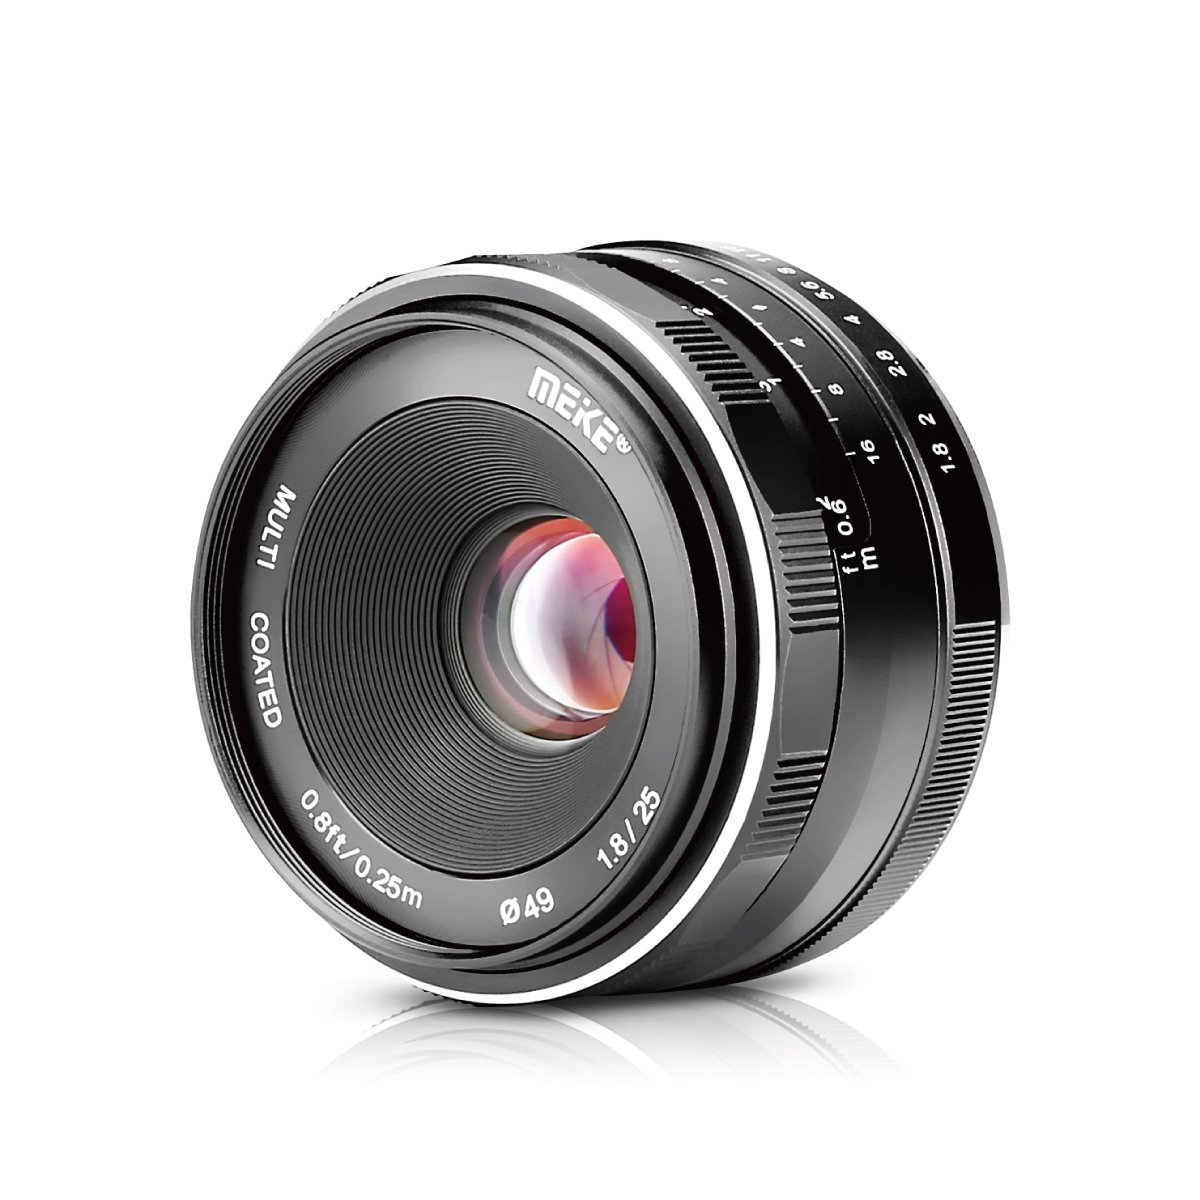 Meike 25mm/F1.8 Large Aperture Manual Focus Prime Lens Sony E-Mount Mirrorless Cameras